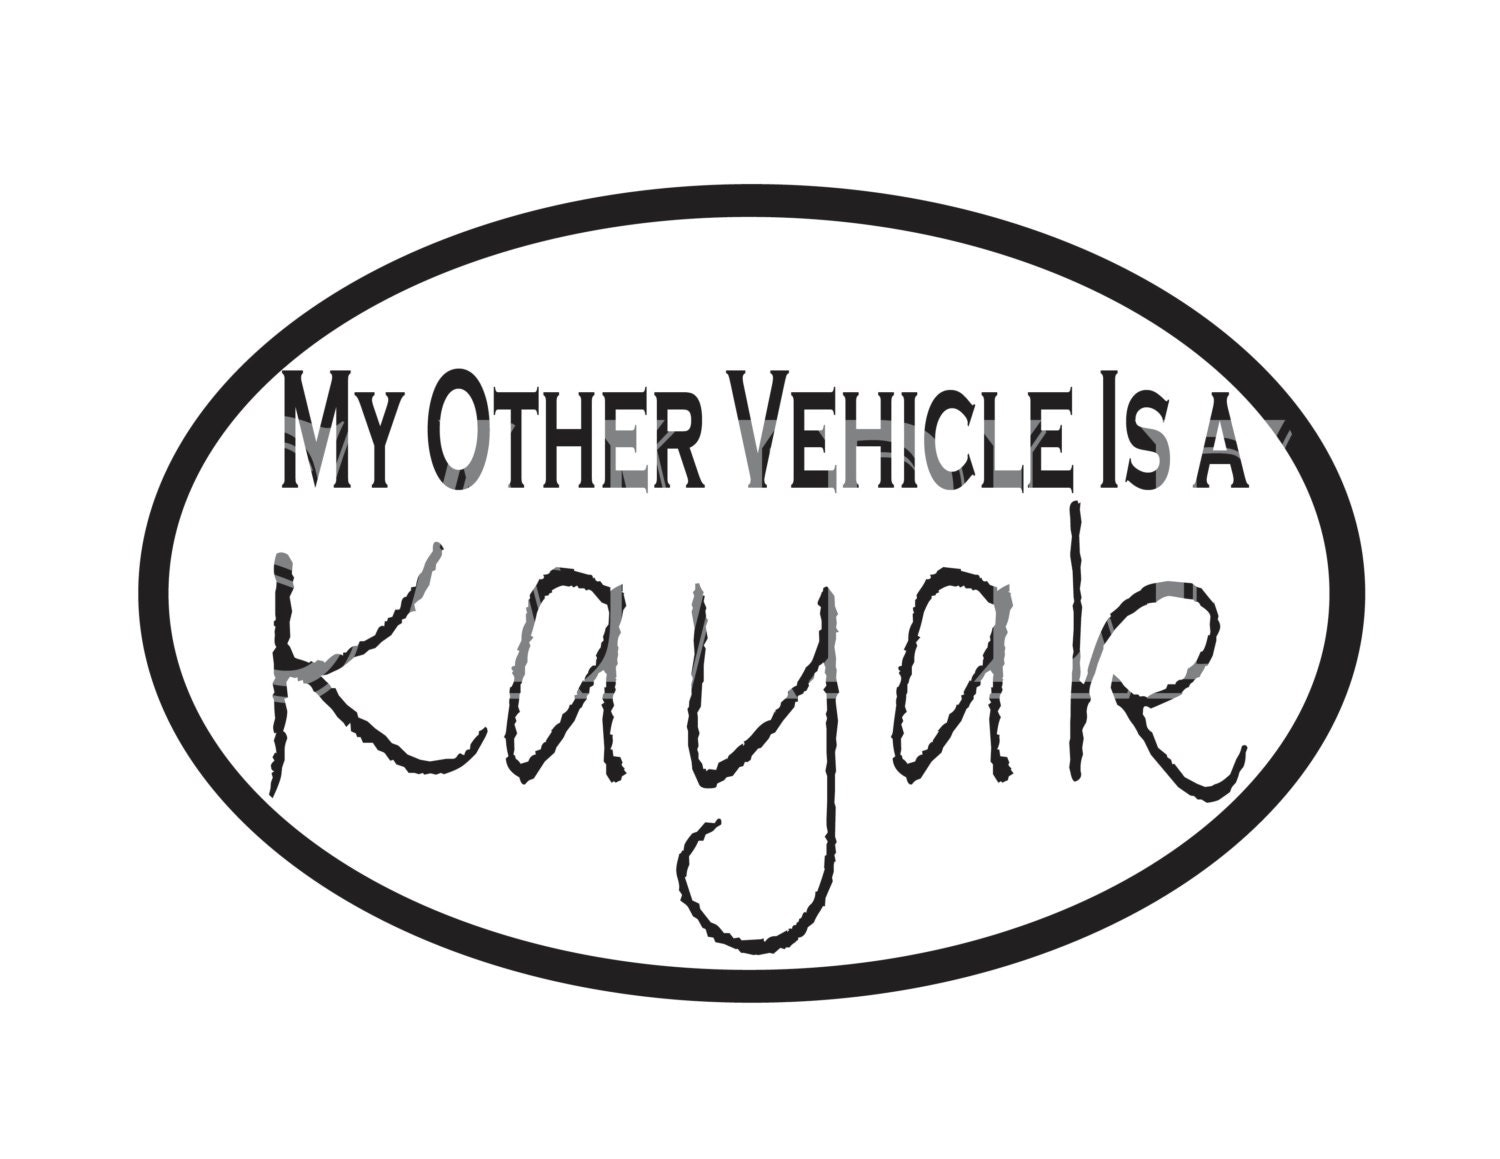 Download Kayak SVG Image File for Vinyl Cut Out Die Cutter~ My ...